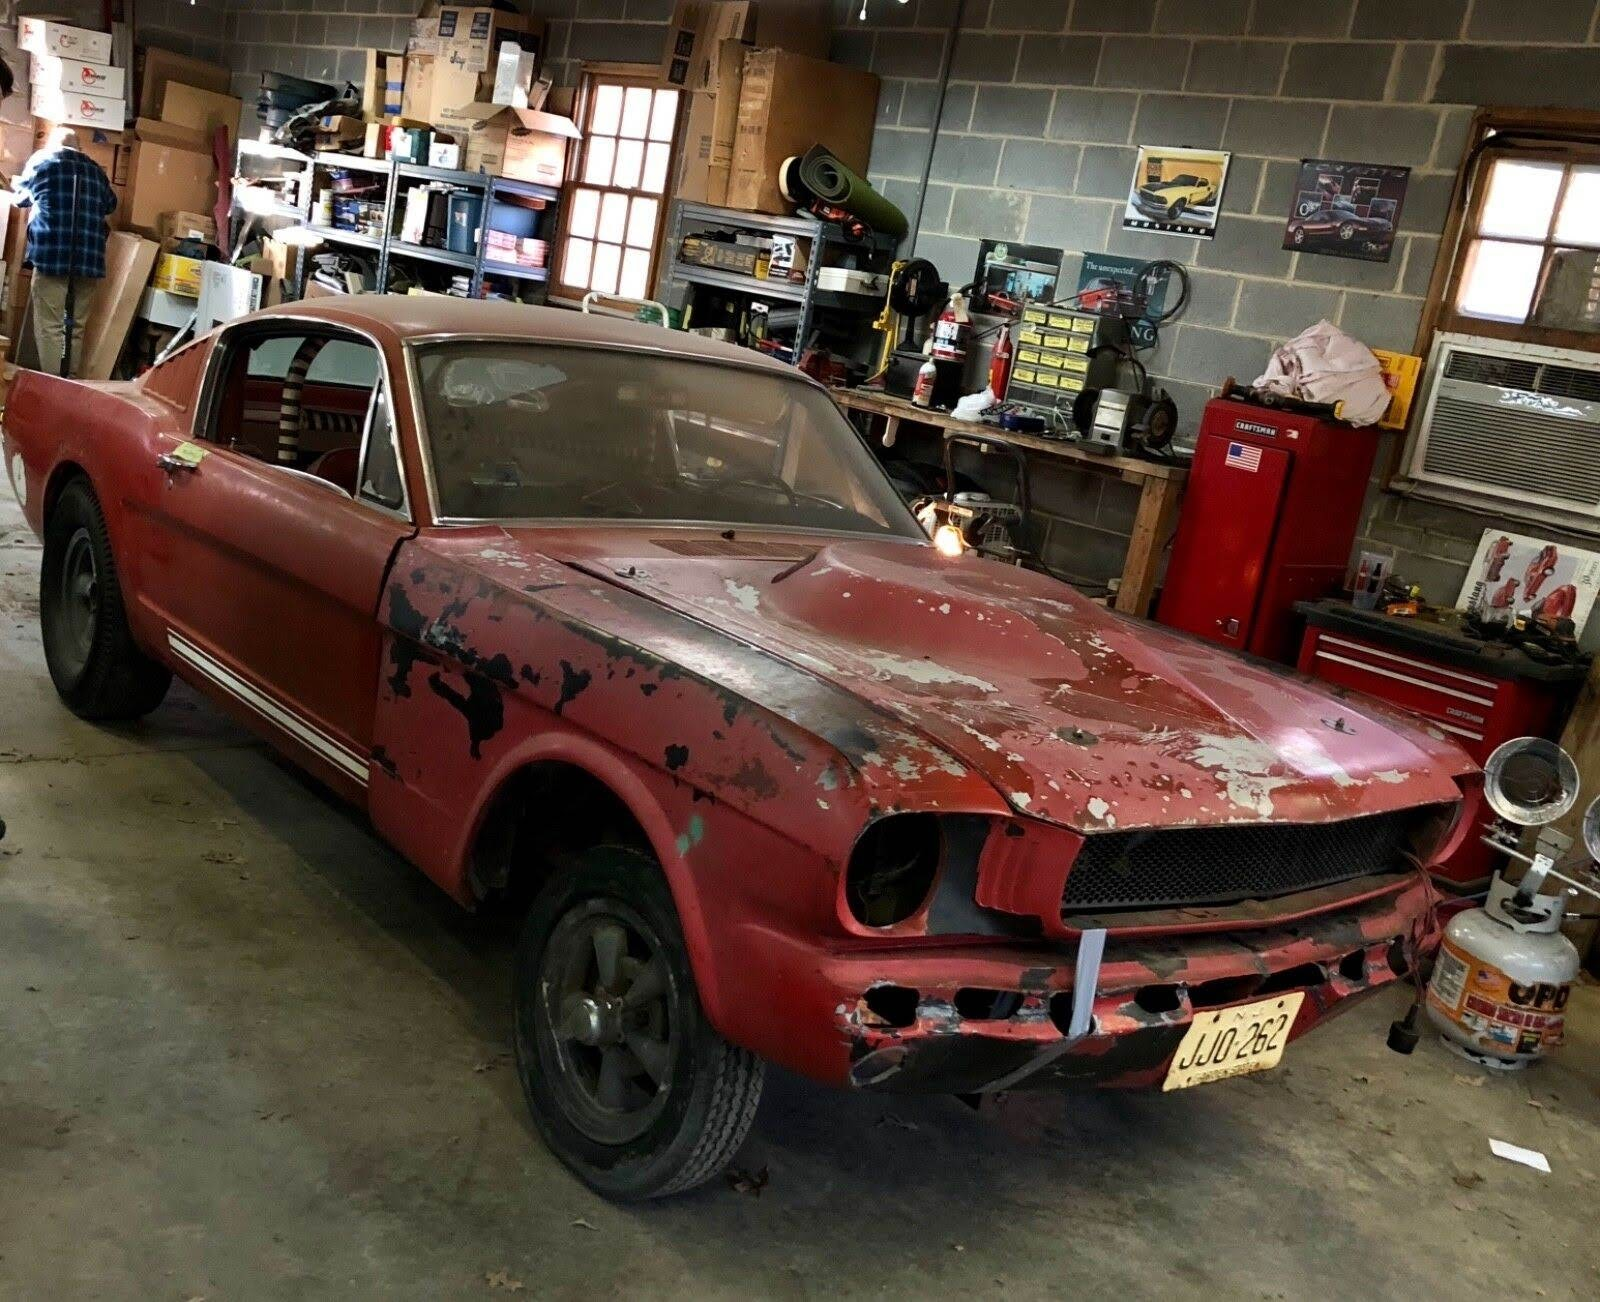 Virginia Classic Mustang Blog: For Sale: 1965 Mustang GT